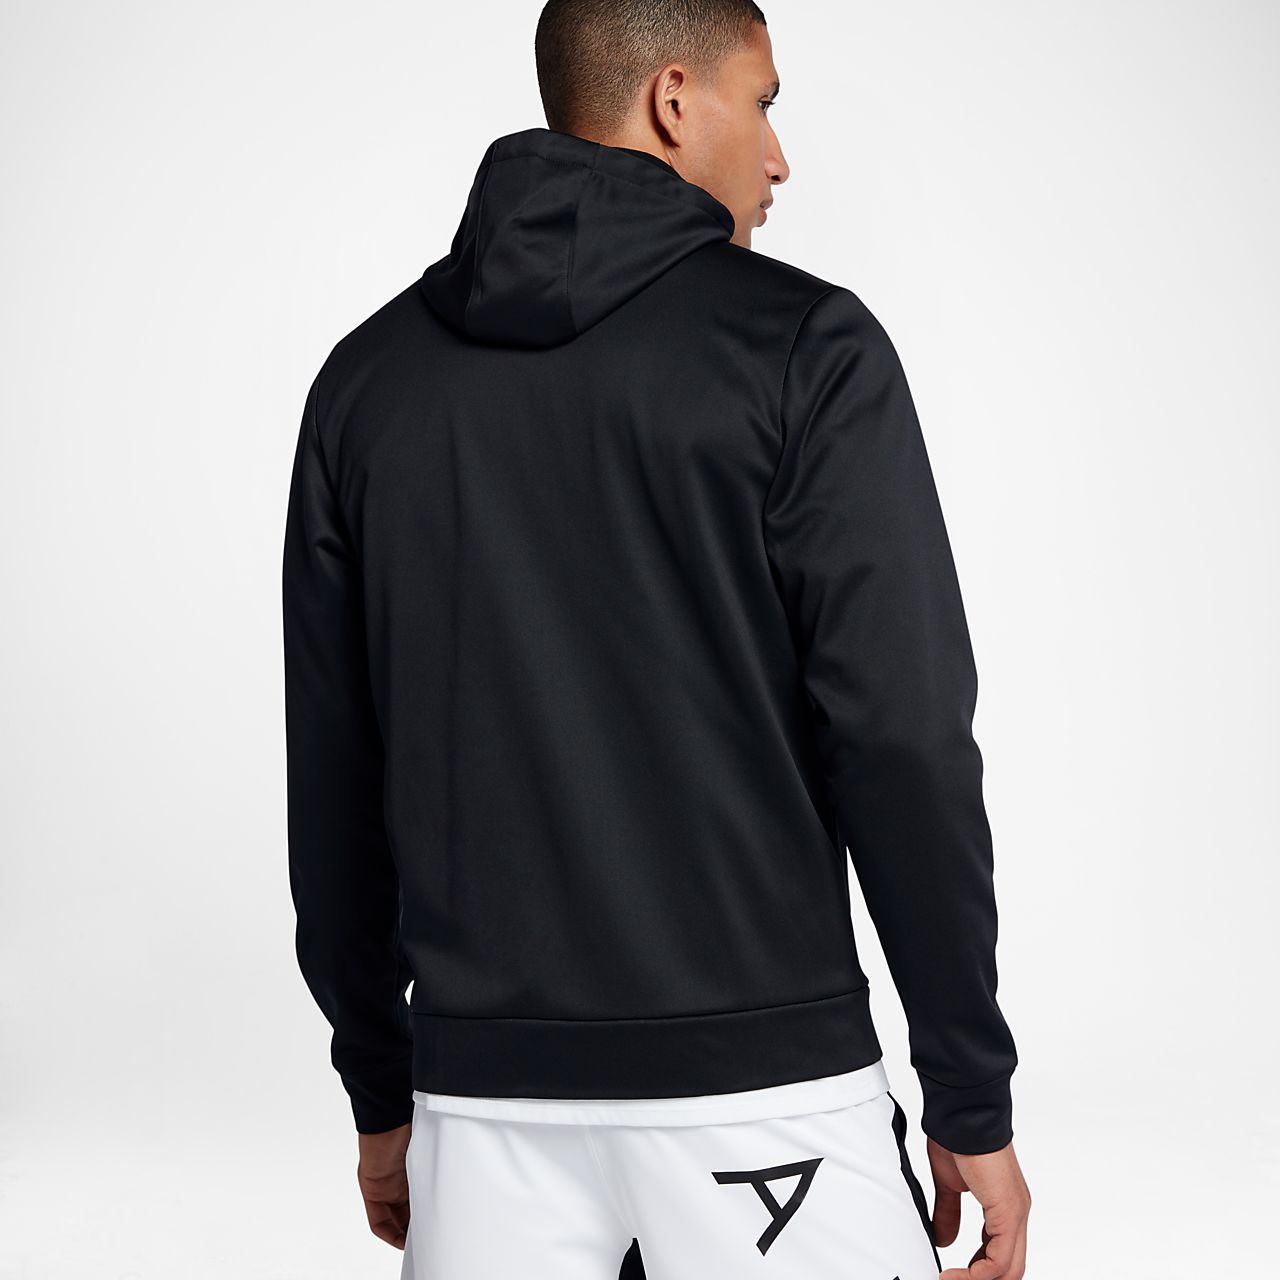 d6ce004b0072 Jordan Therma 23 Alpha Men s Full-Zip Hoodie. Nike.com AU